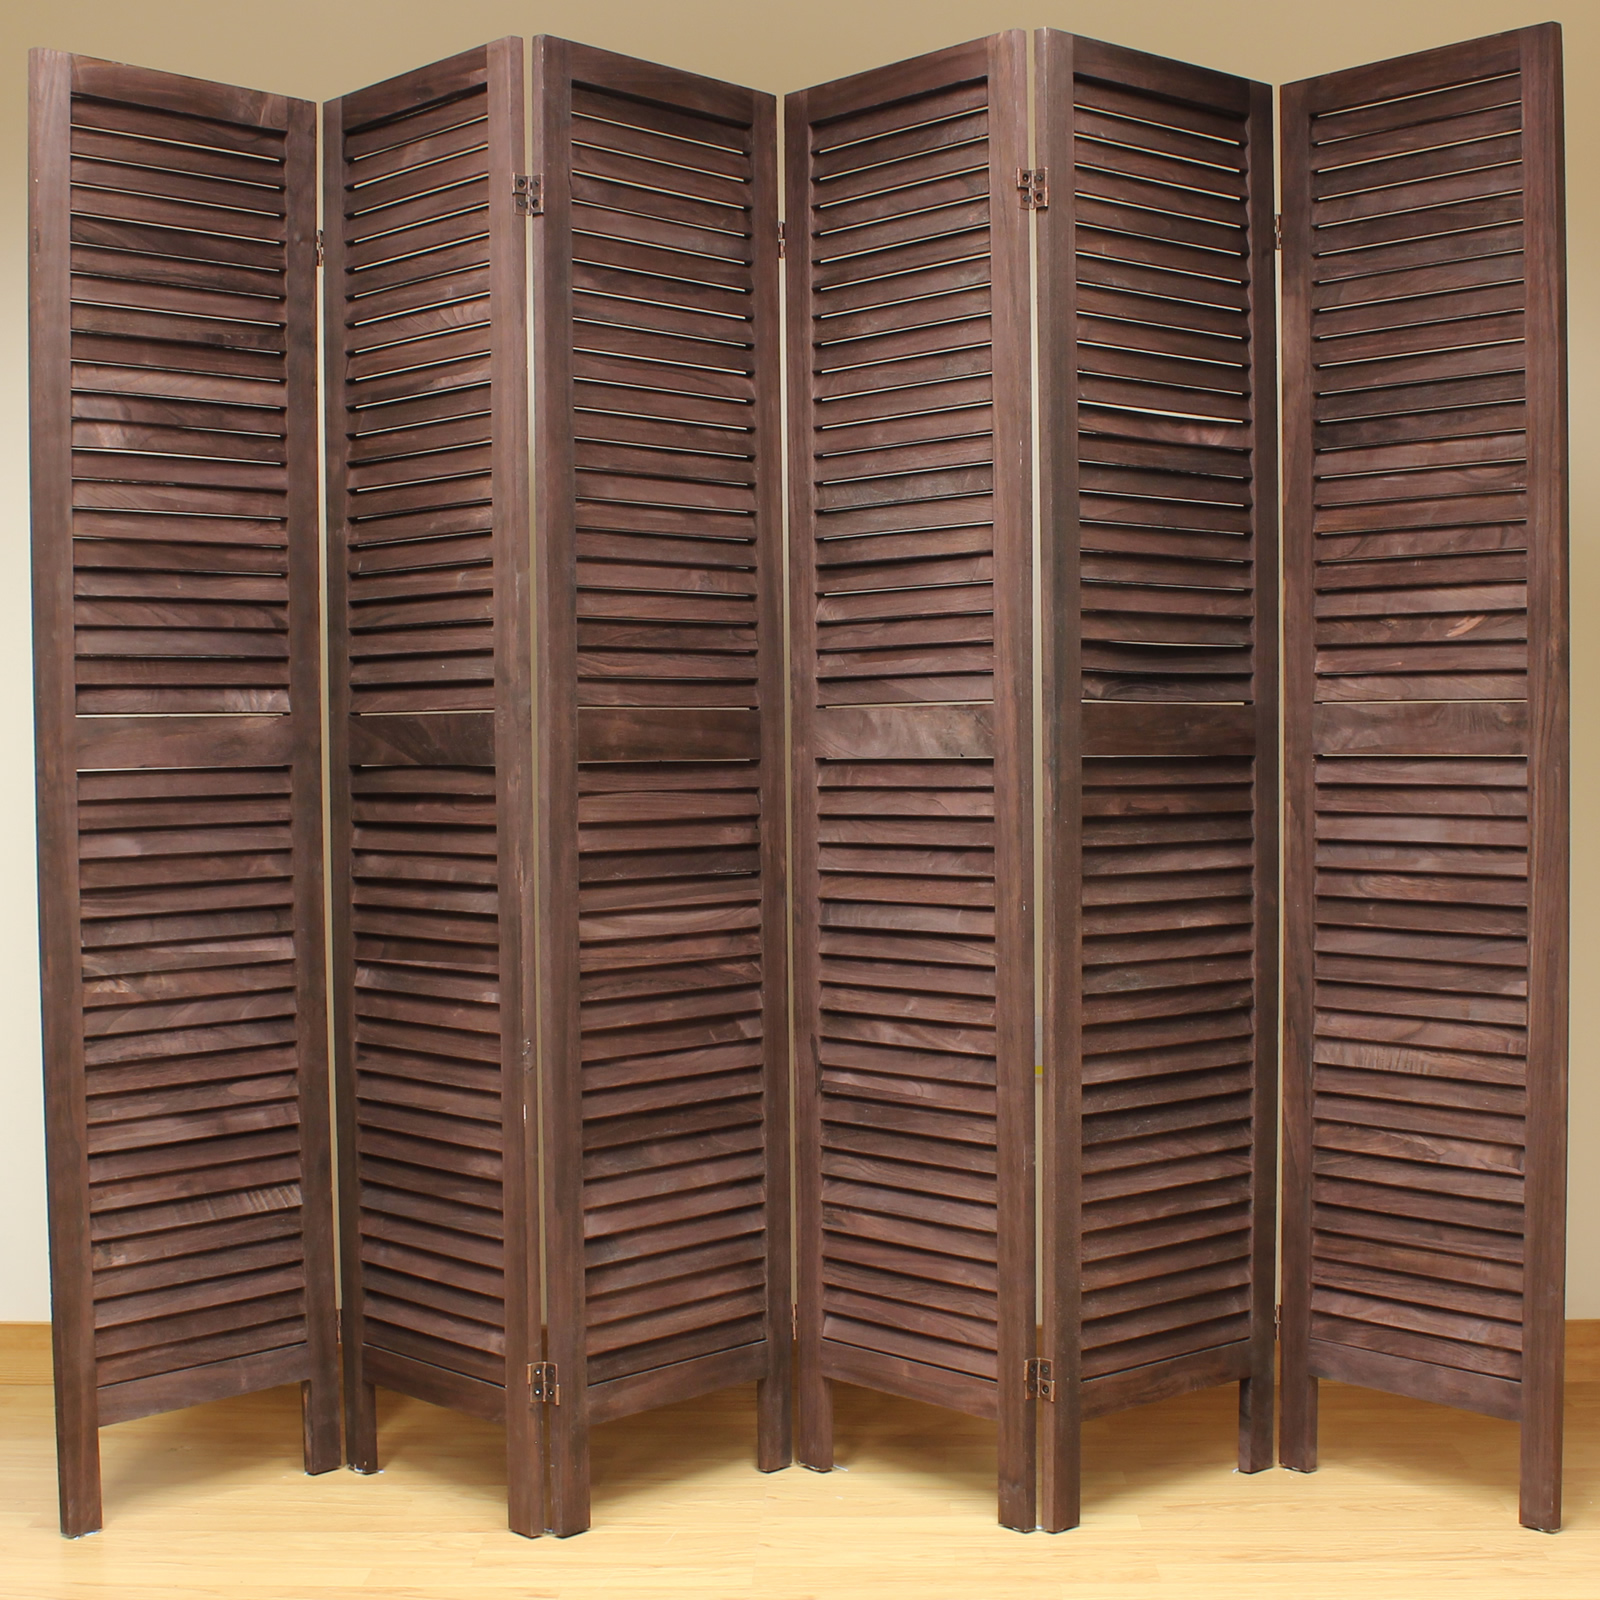 Room Divider Screens Brown 6 Panel Wooden Slat Room Divider Home Privacy Screen